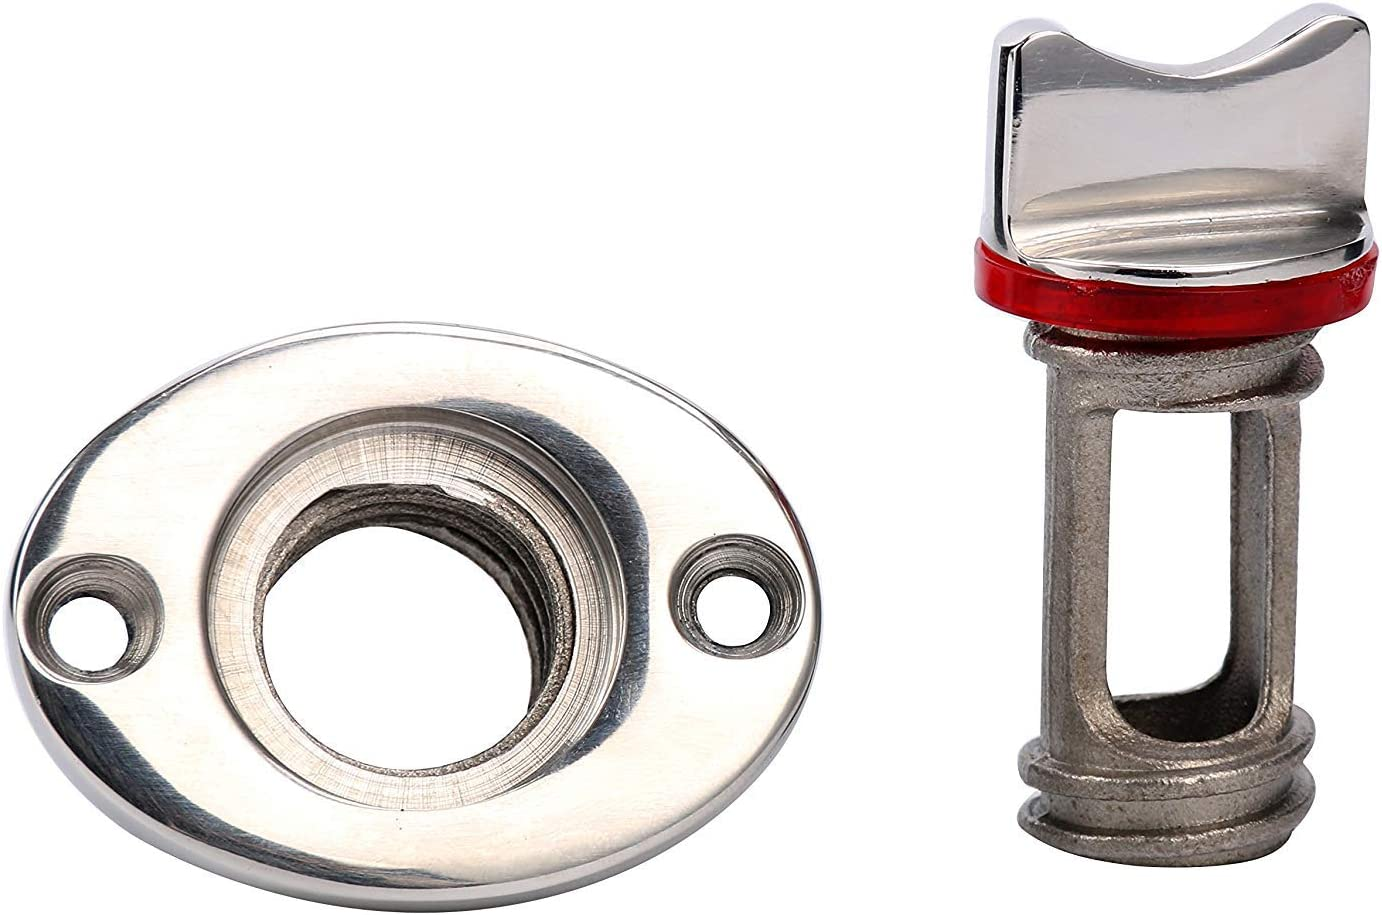 Amarine Made Oval Garboard Drain Plug Stainless Steel Boat Fits 1 Hole Thread for 3//4